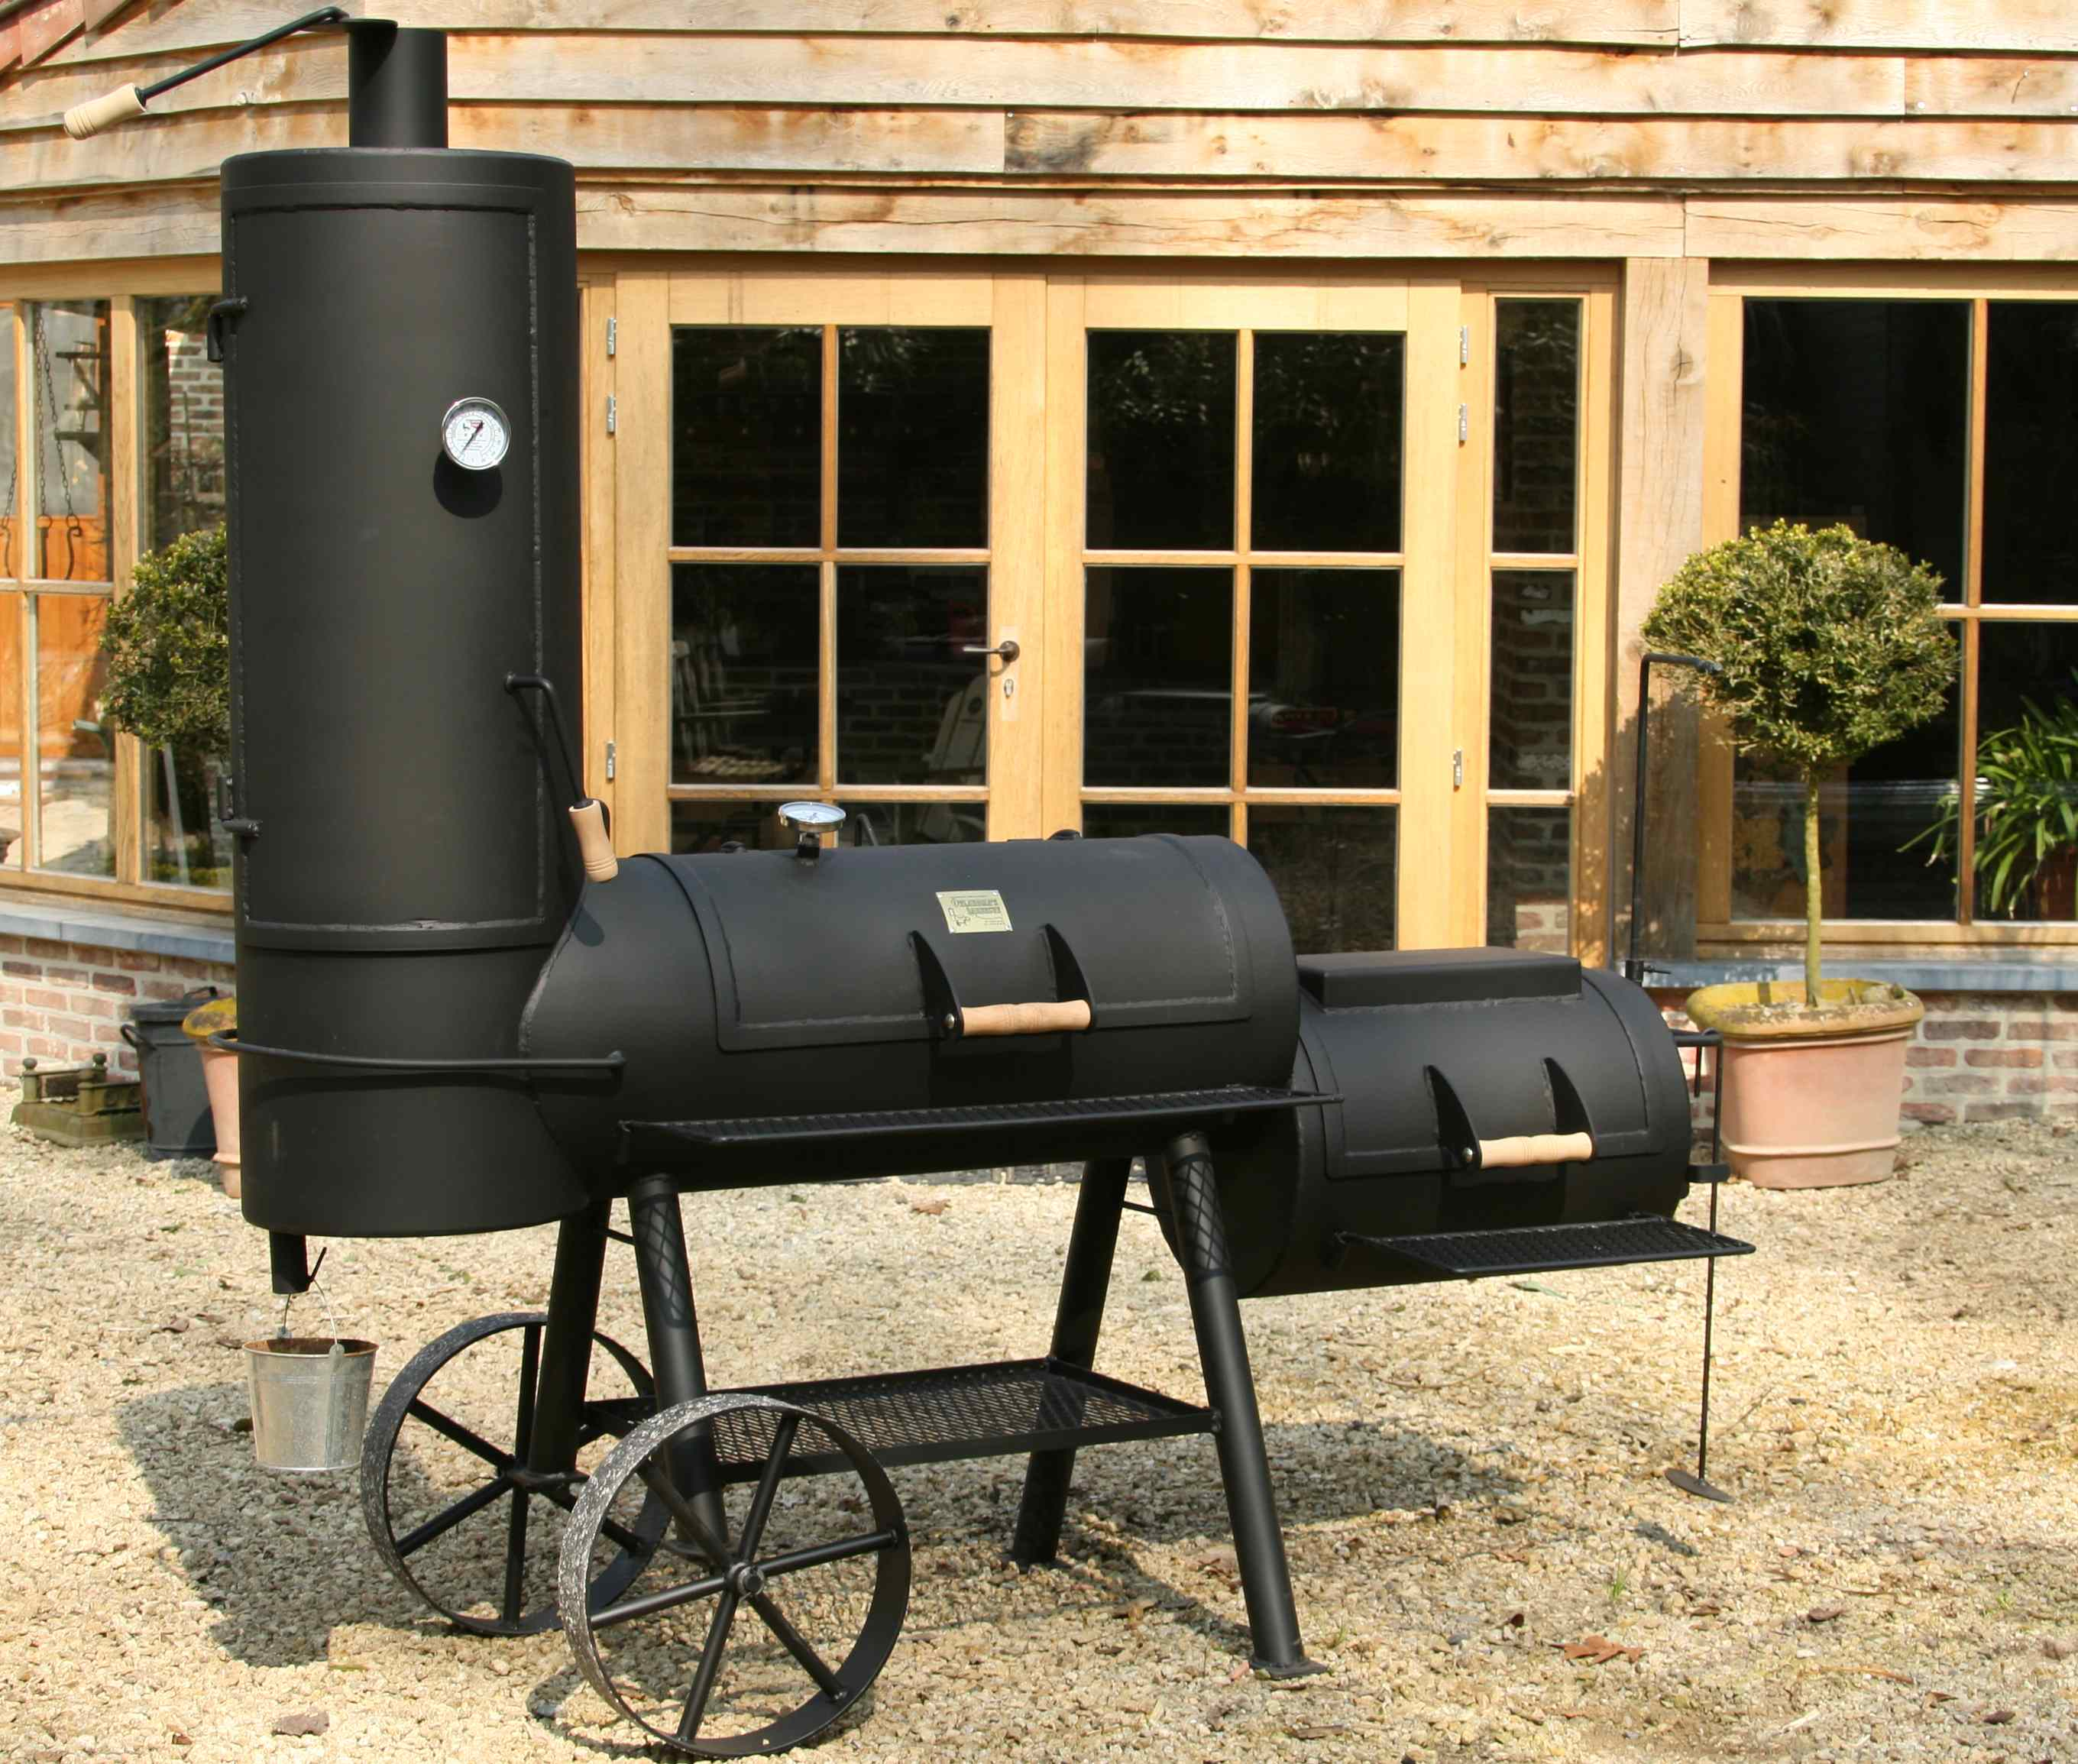 oklahoma-barbecue-bbq-lux-spas-wellness